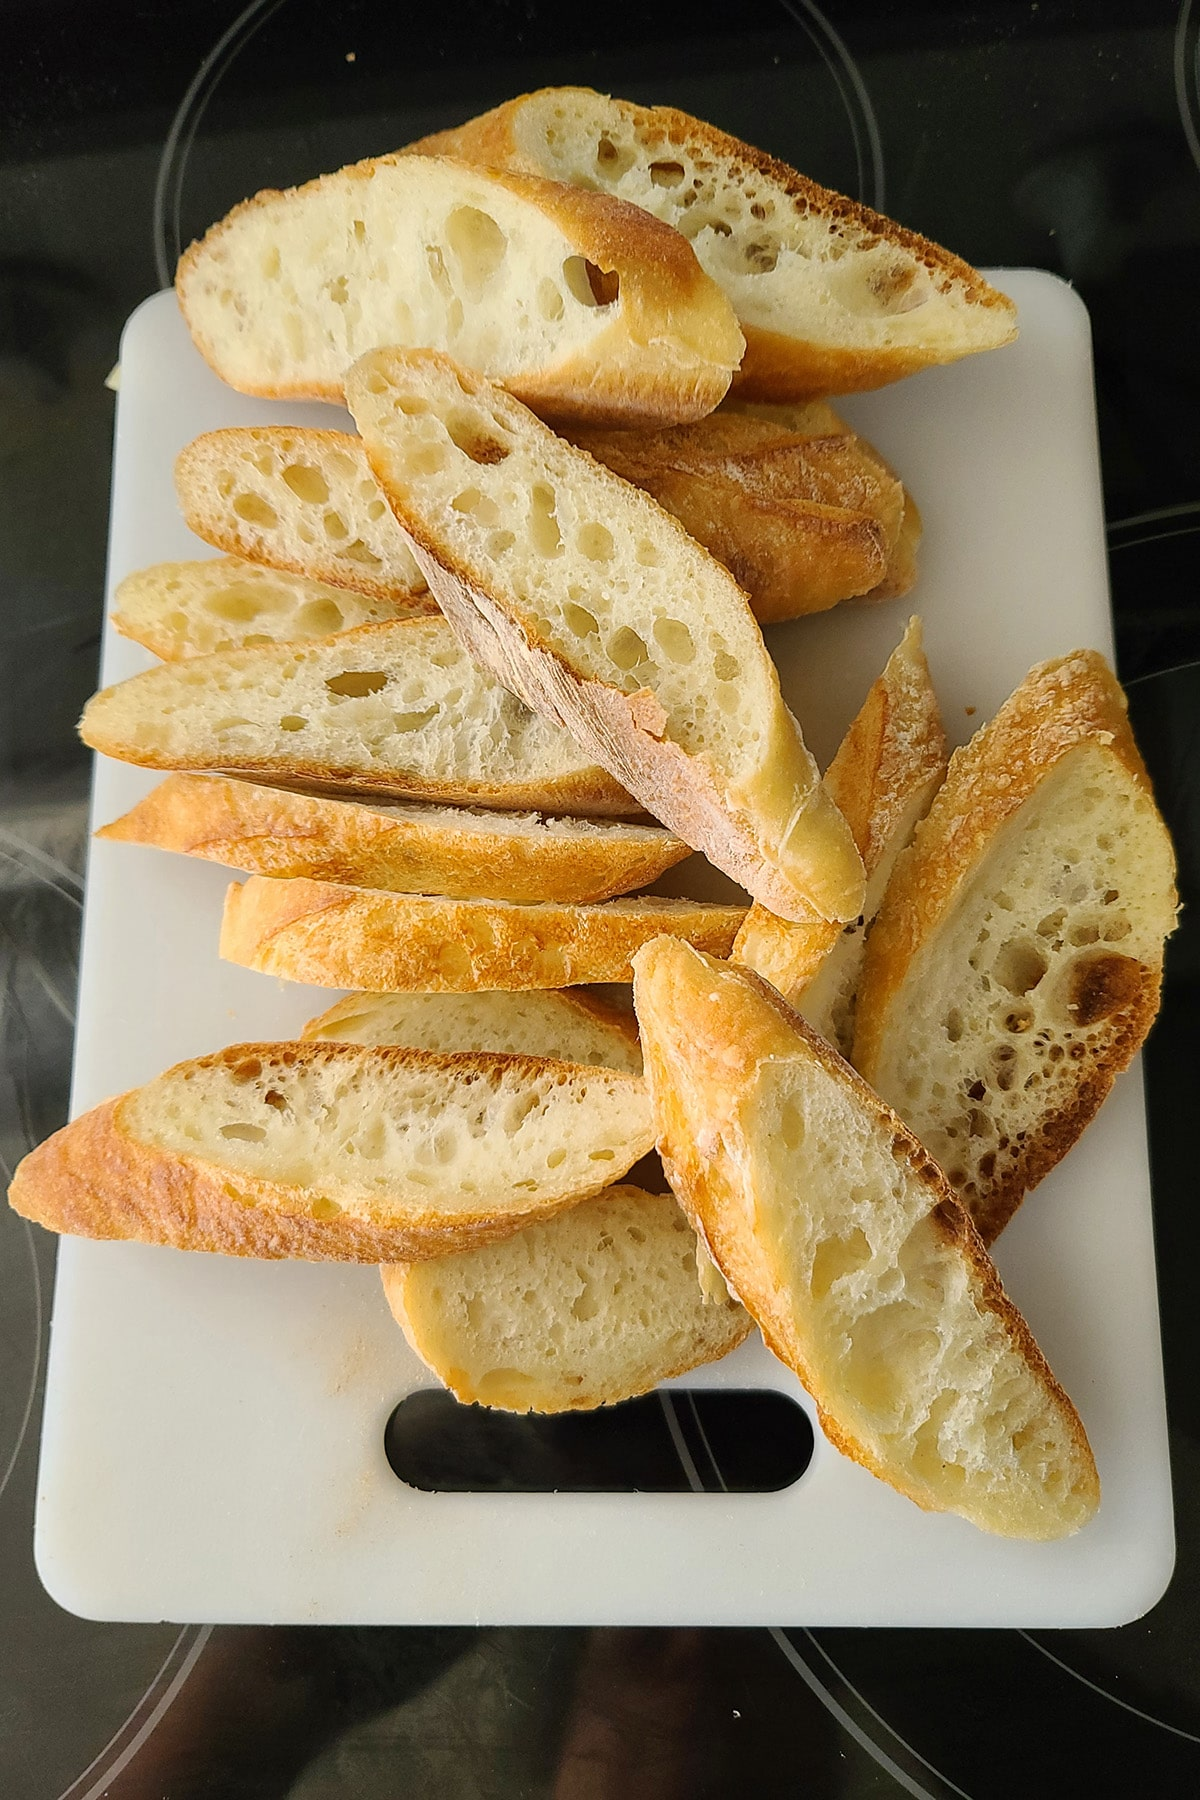 Slices of baguette in a pile on top of a white cutting board.